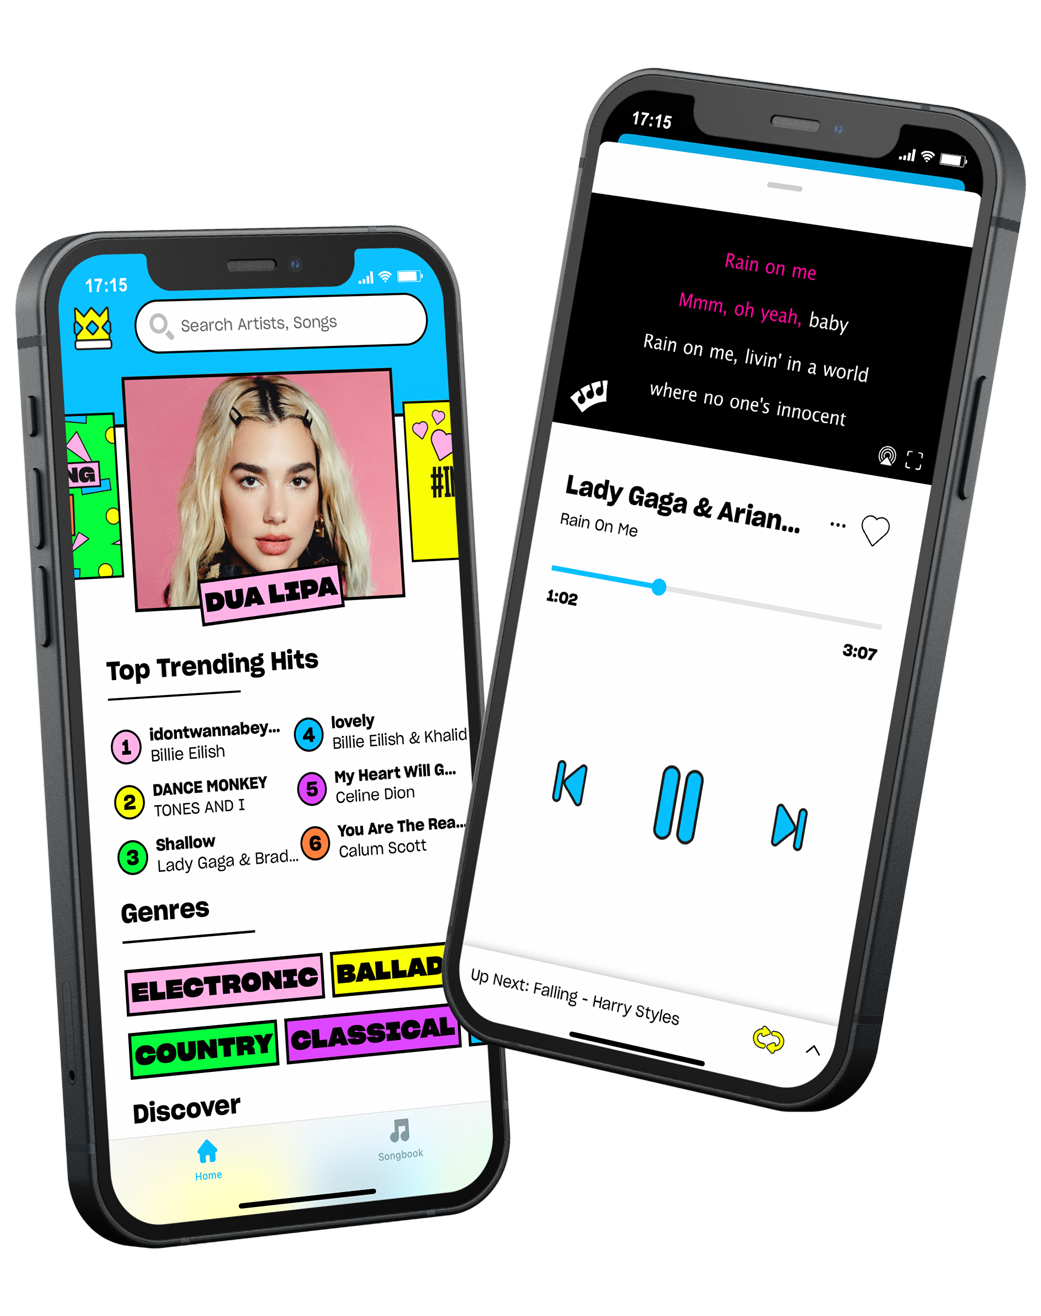 Screenshot of karaoke on the Sing King app with Dua Lipa as a trending hit and Lady Gaga's song with Ariana Grande